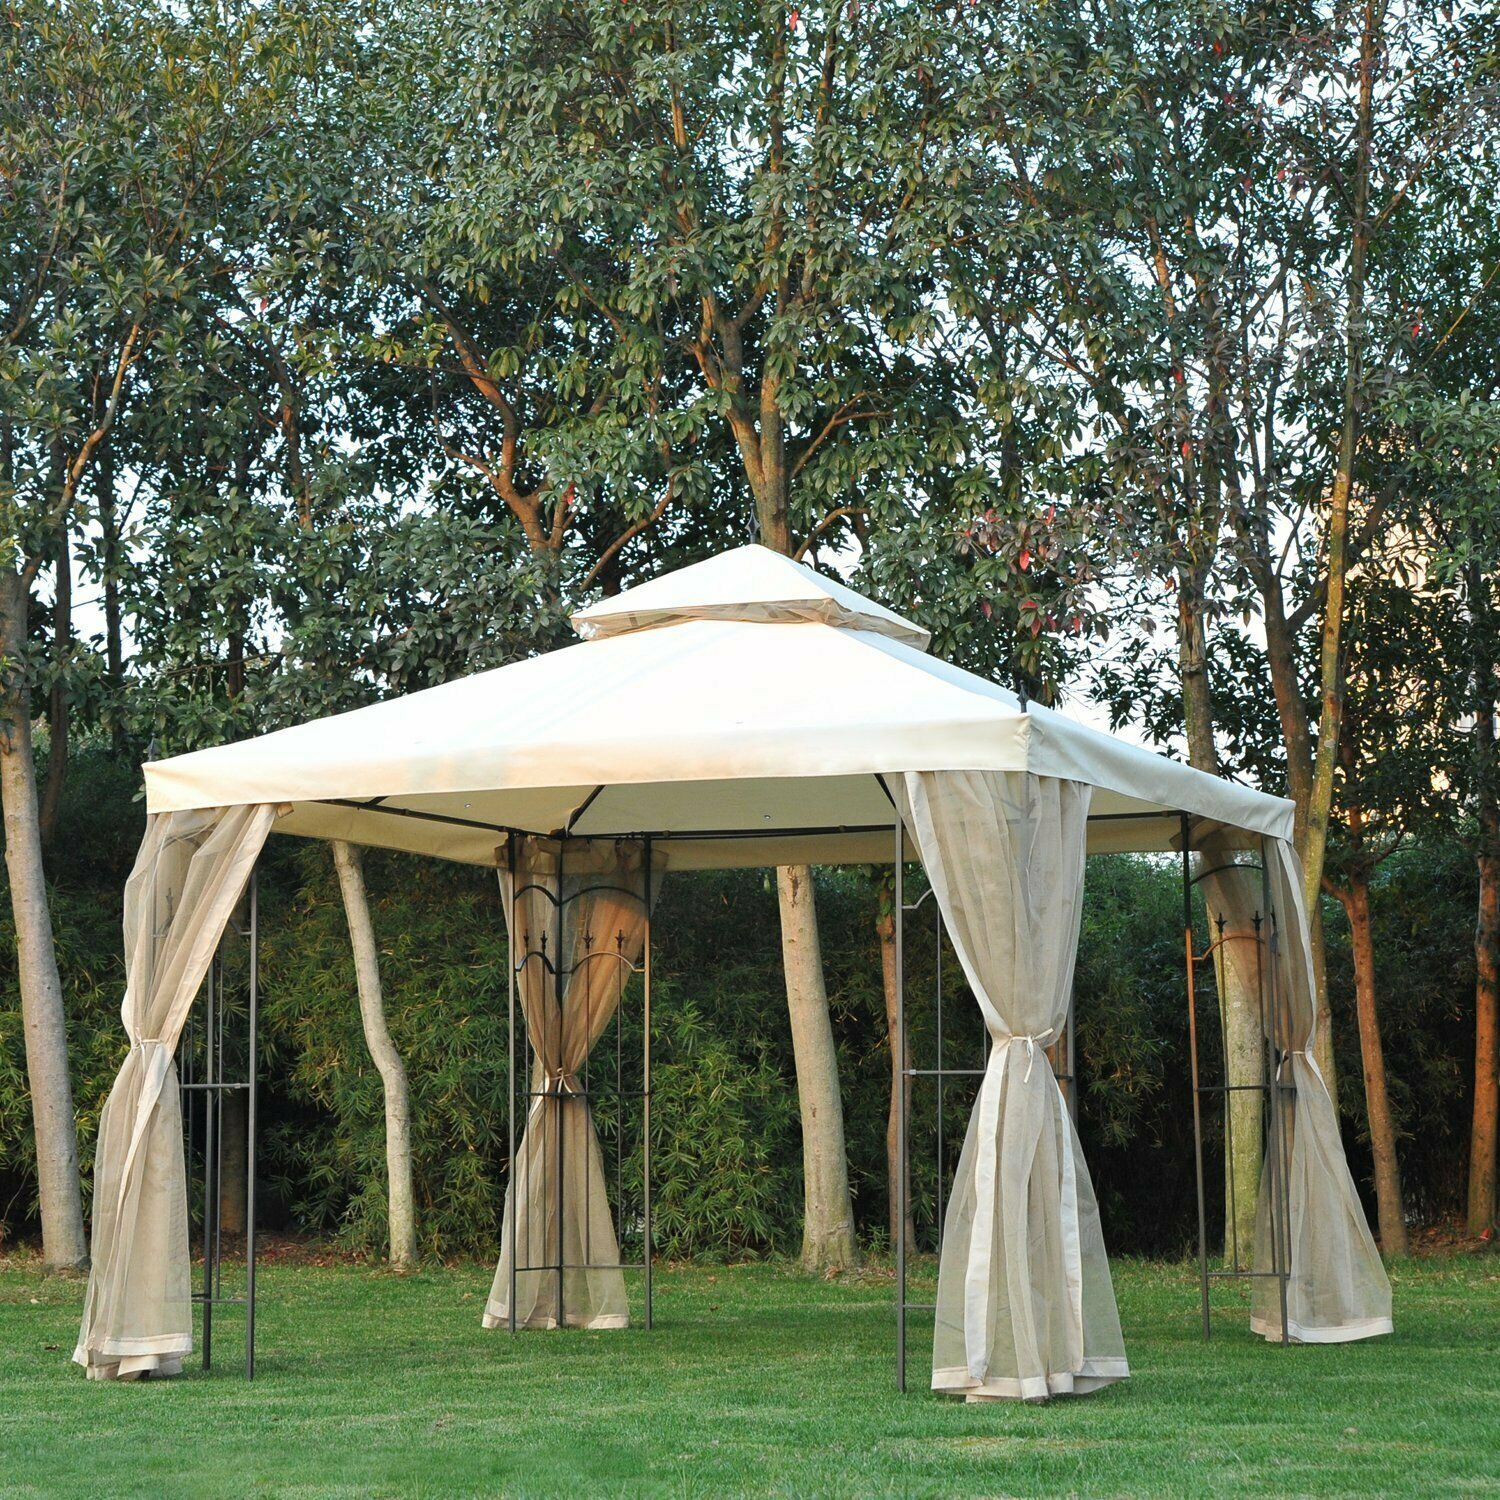 Metal Garden Gazebo Outsunny 10 X Steel Outdoor Garden Gazebo With Mesh Curtains Beige